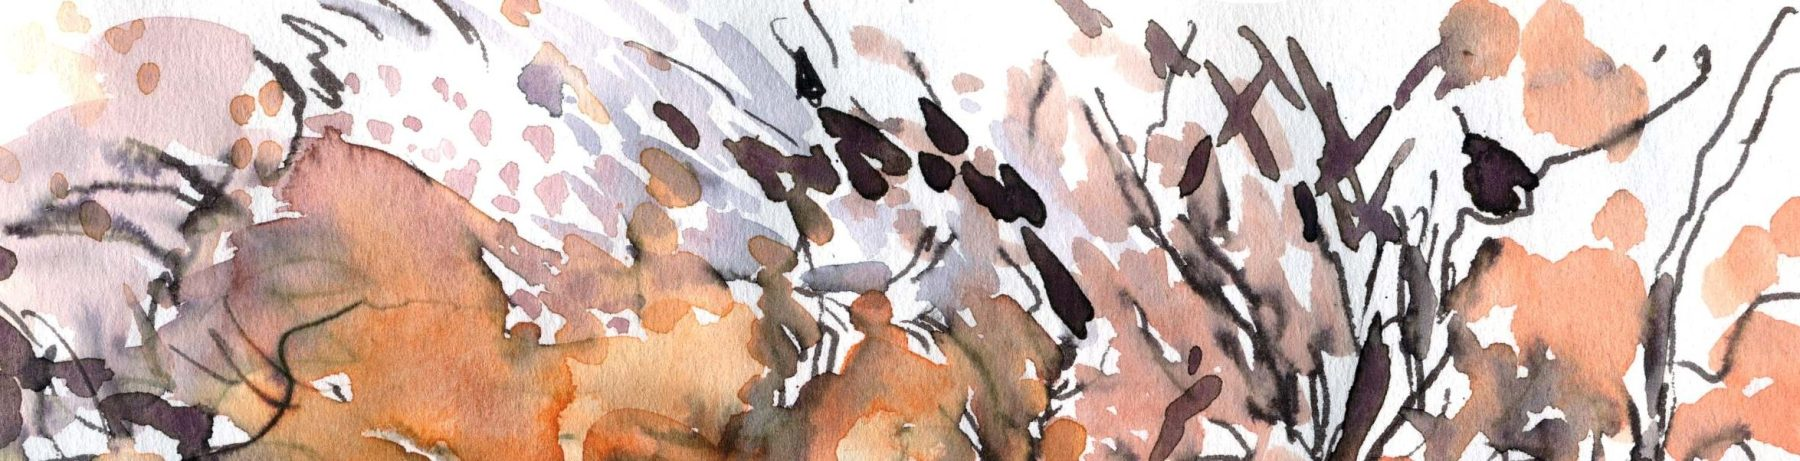 Frosty Morning - detail, watercolour painting